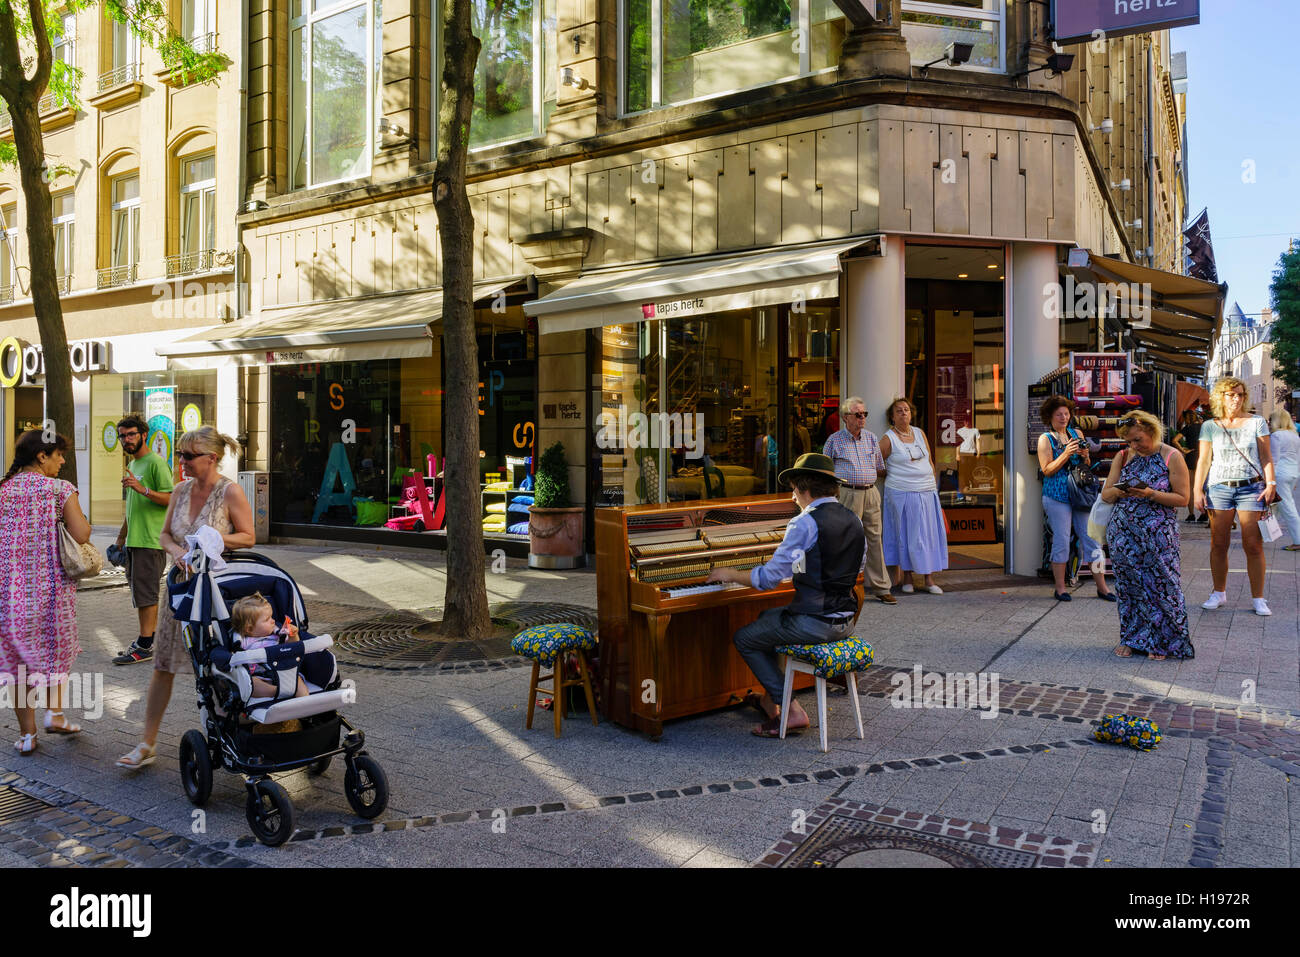 Luxembourg, SEP 10: Street artist playing piano with passers on SEP 10, 2016 at Luxembourg - Stock Image